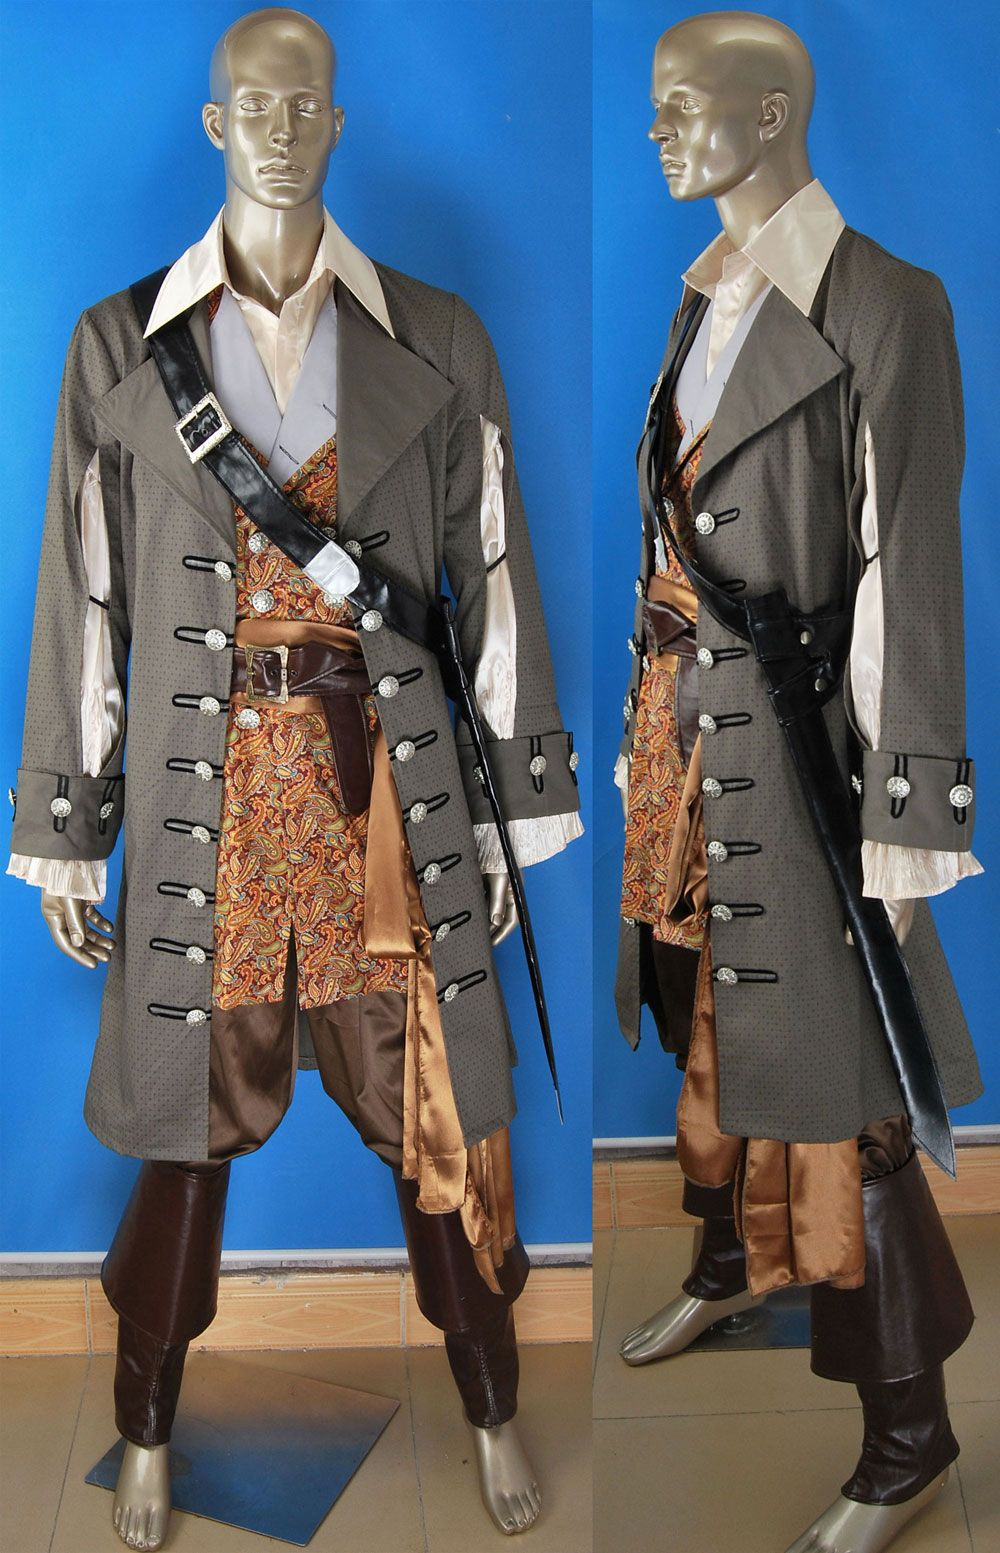 Pirates of the Caribbean: On Stranger Tides Captain Hector Barbossa cosplay  costume deluxe express pre